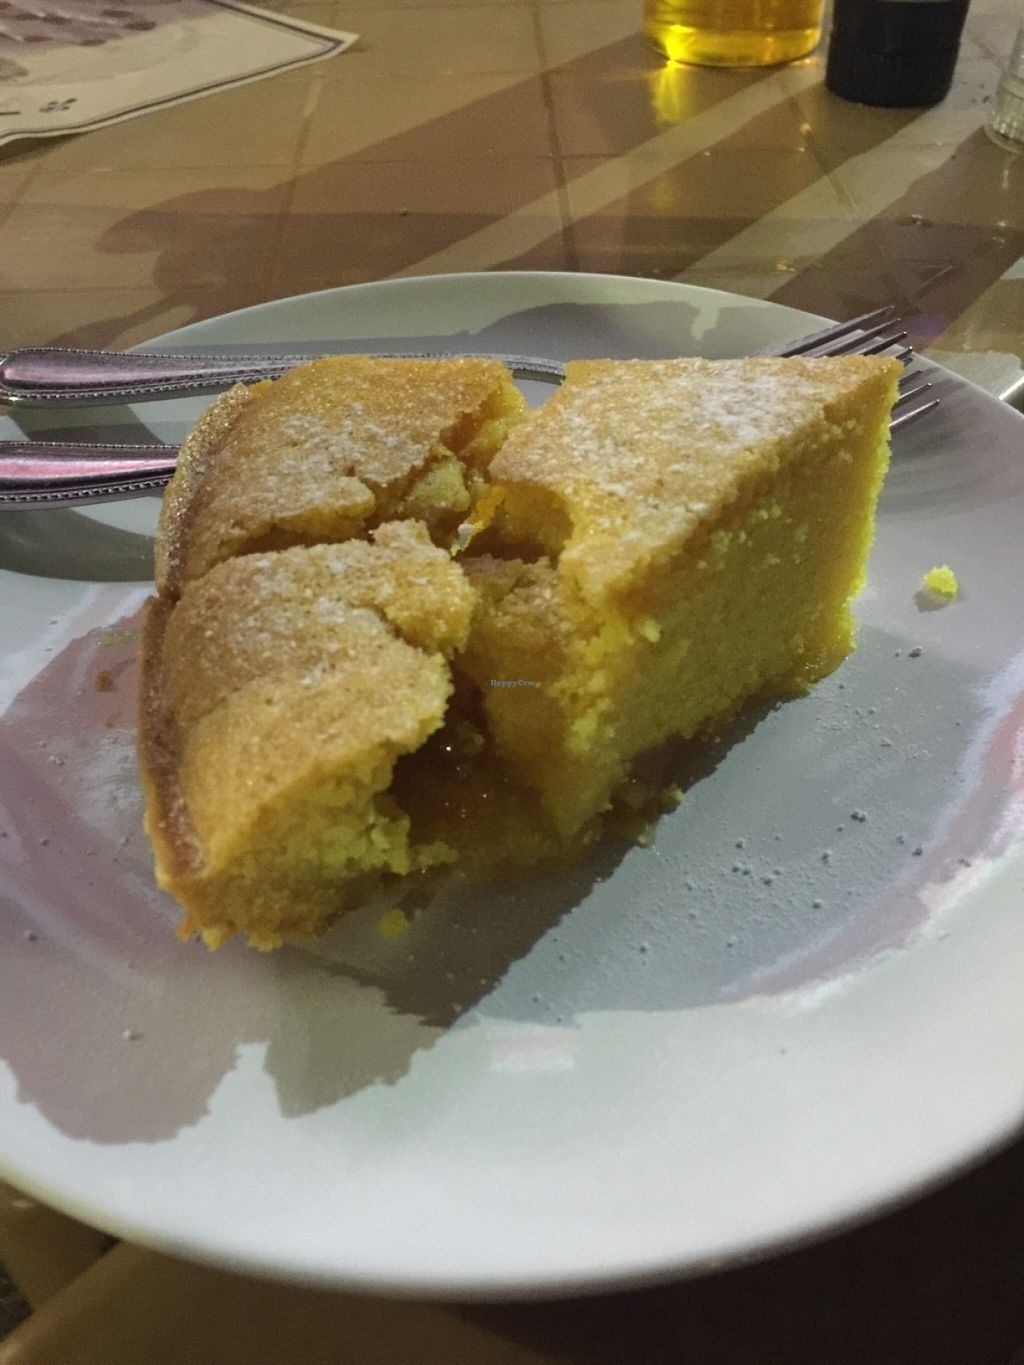 "Photo of I Toscani  by <a href=""/members/profile/AmandaAttard"">AmandaAttard</a> <br/>Turmeric cake <br/> July 25, 2016  - <a href='/contact/abuse/image/77042/162091'>Report</a>"